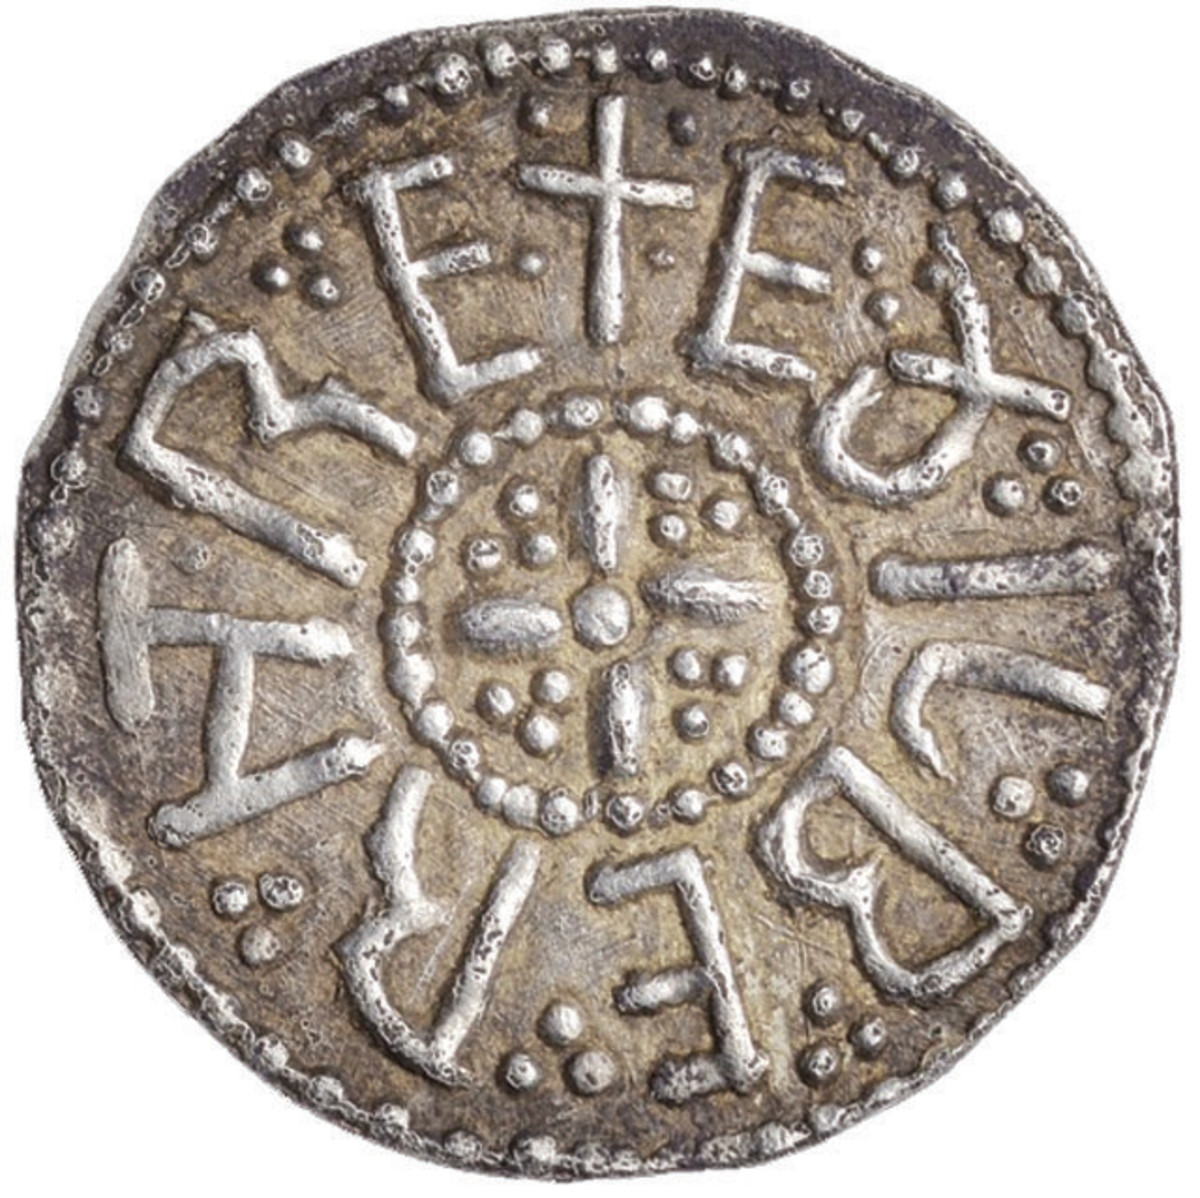 Obverse of the Anglo-Saxon silver penny at auction